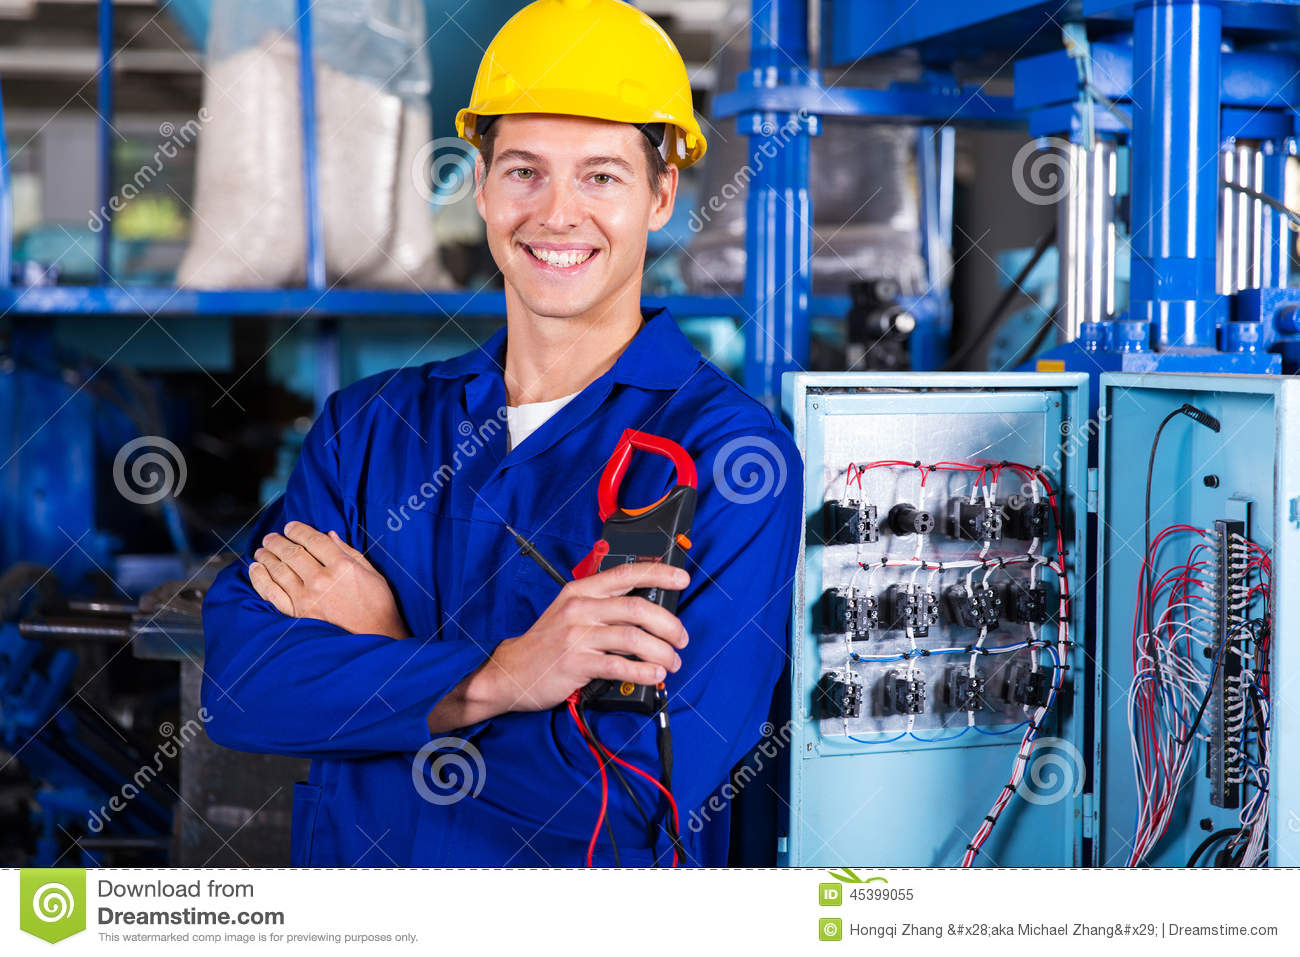 Electrician holding insulation